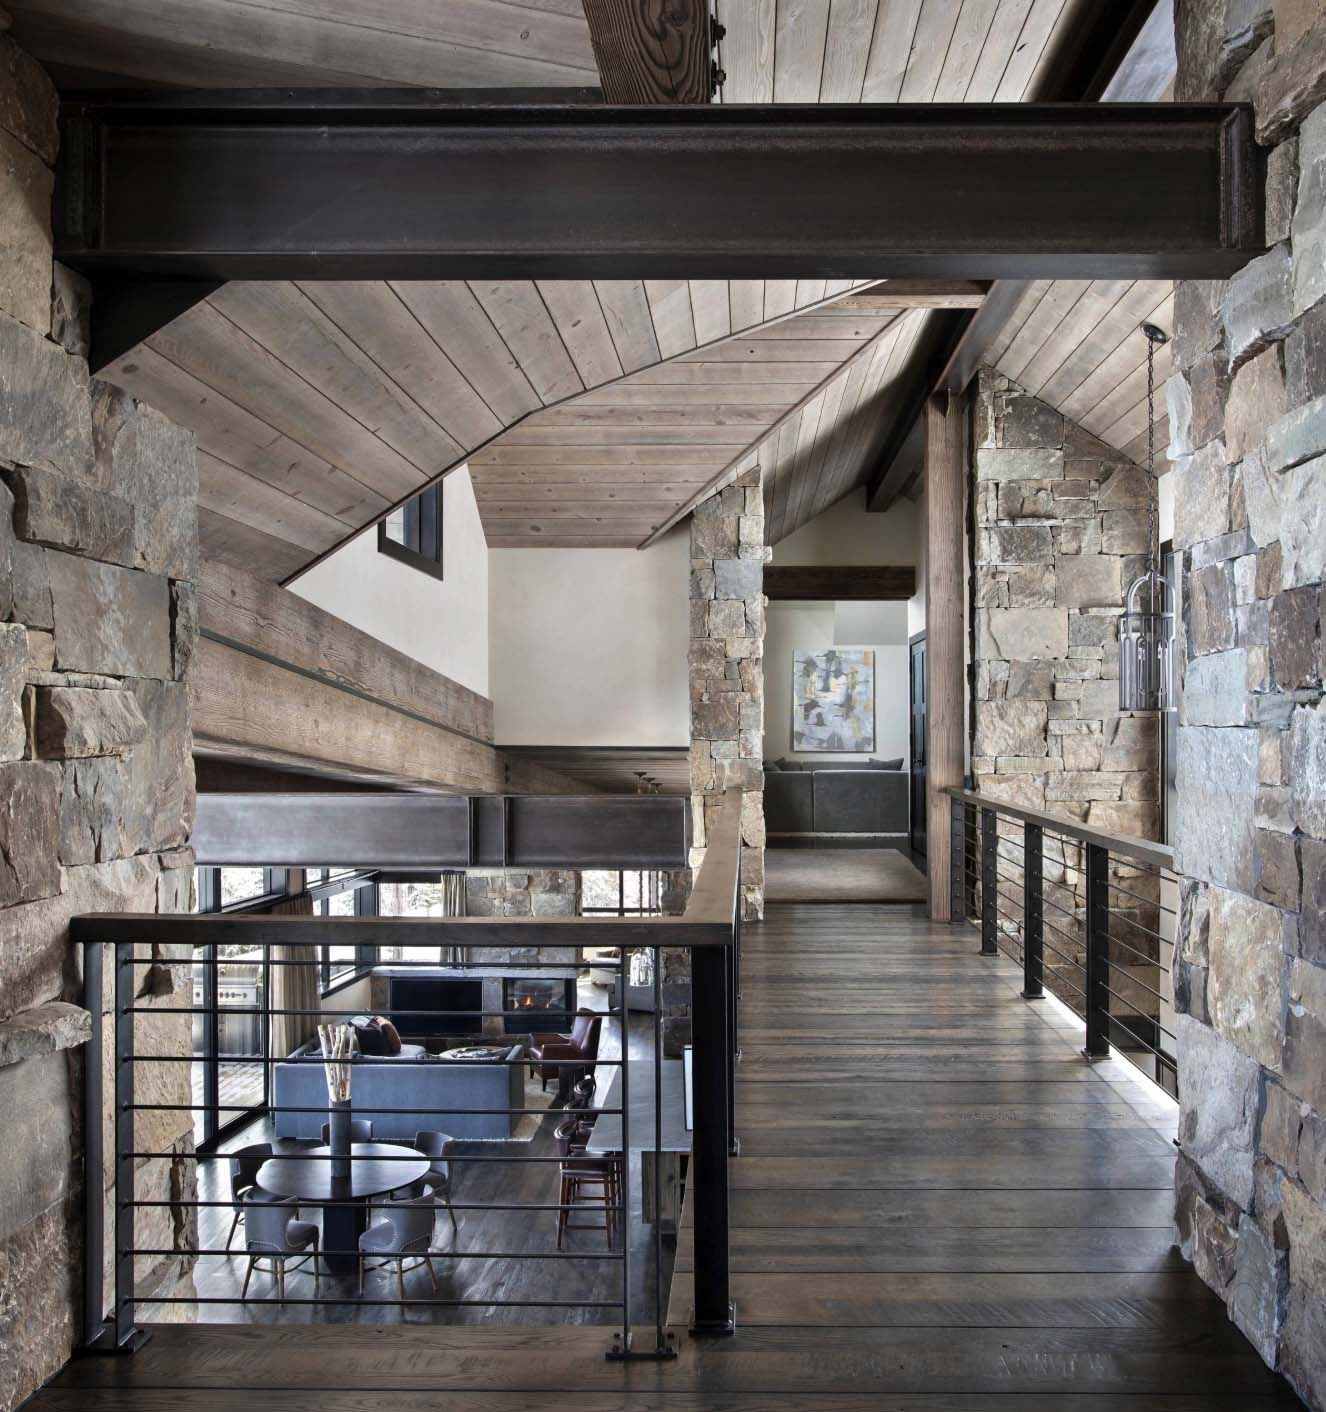 Incredible mountain modern dwelling offers slope-side living in Montana